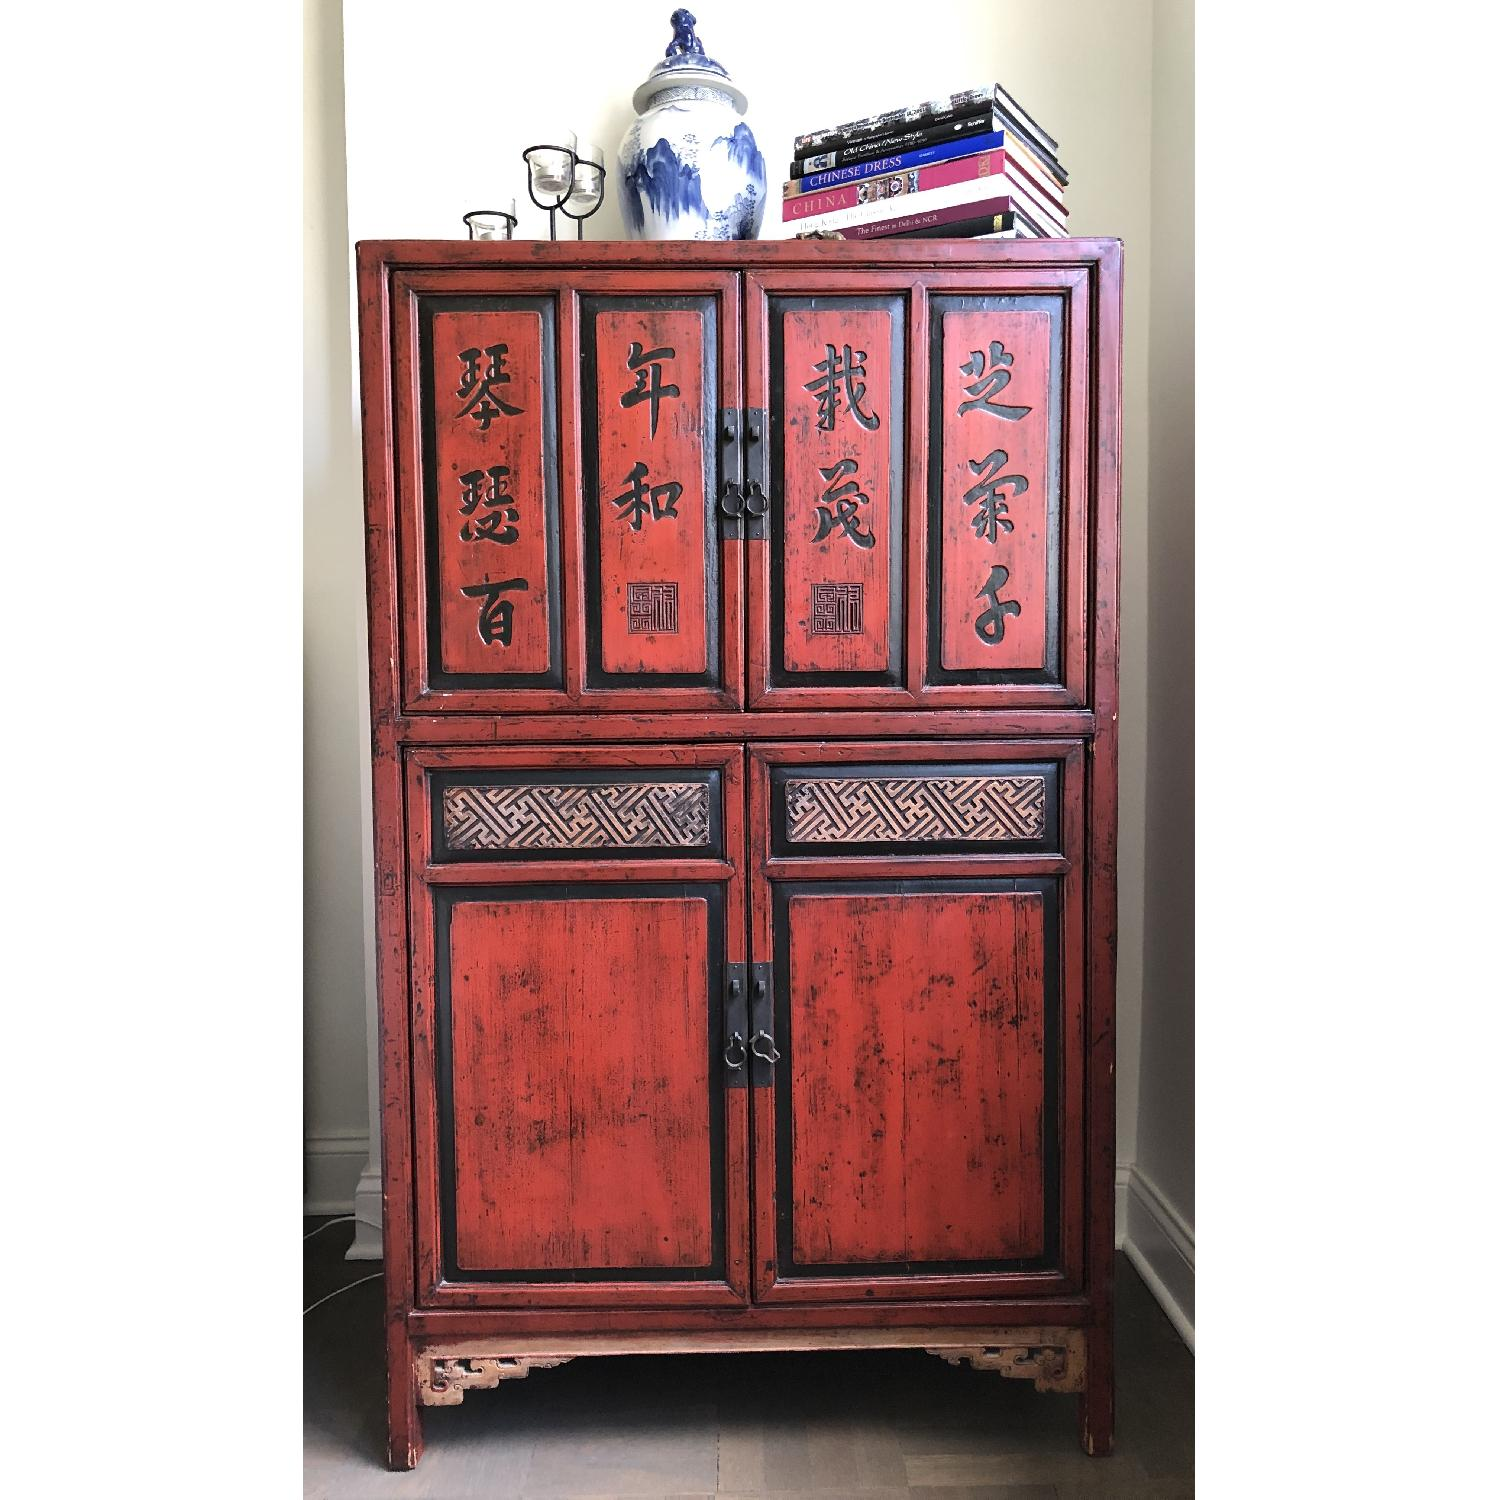 Antique Chinese Cabinet - image-1